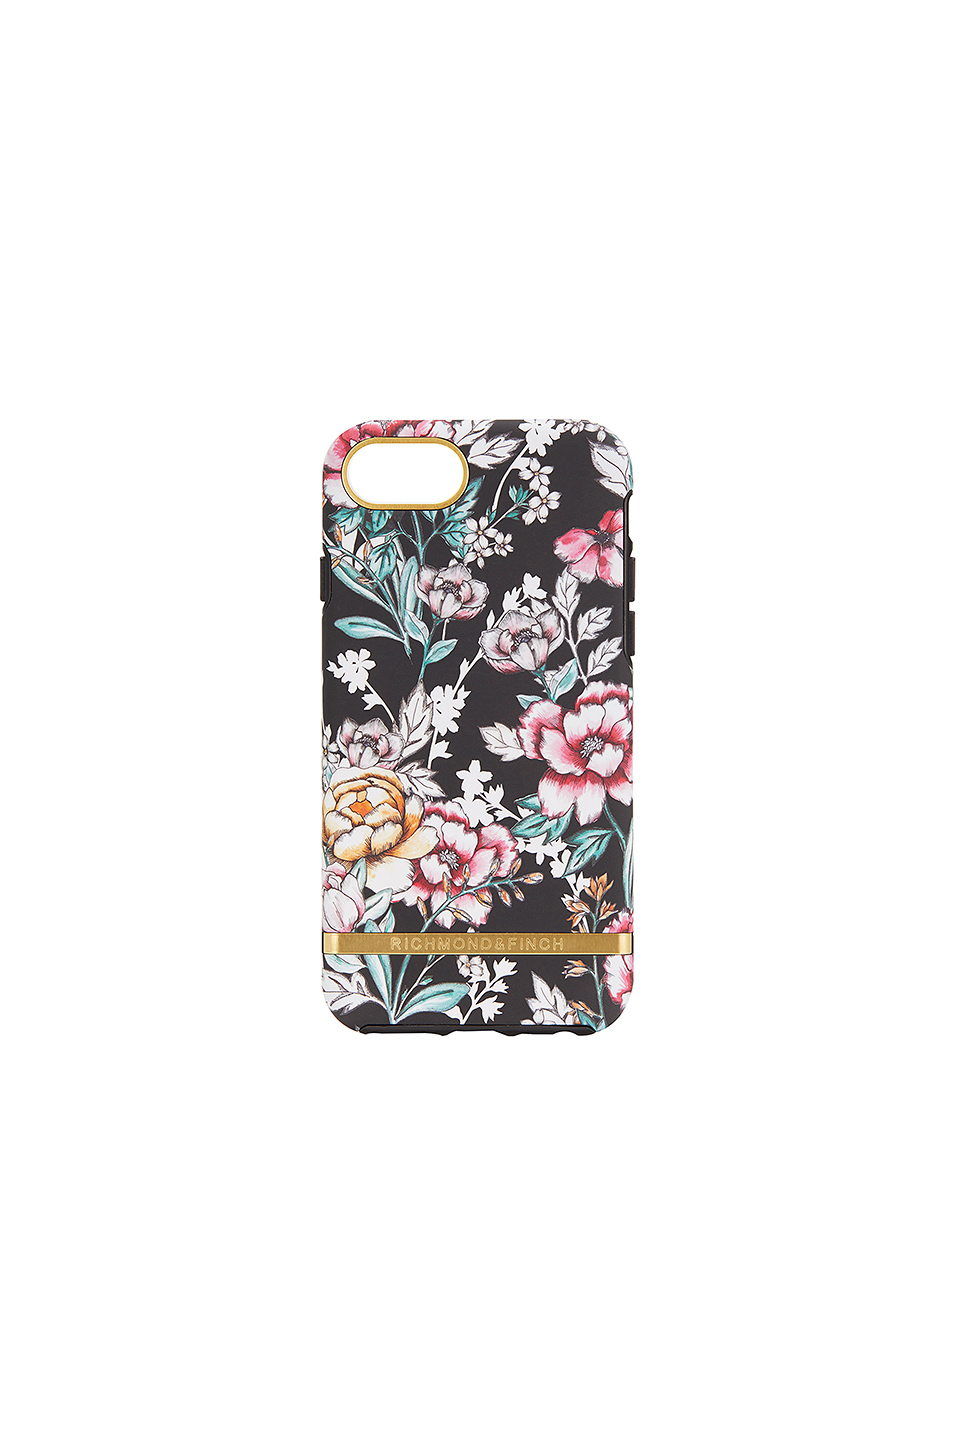 Richmond & Finch Black Floral iPhone 6/7/8 Case in Gold Details